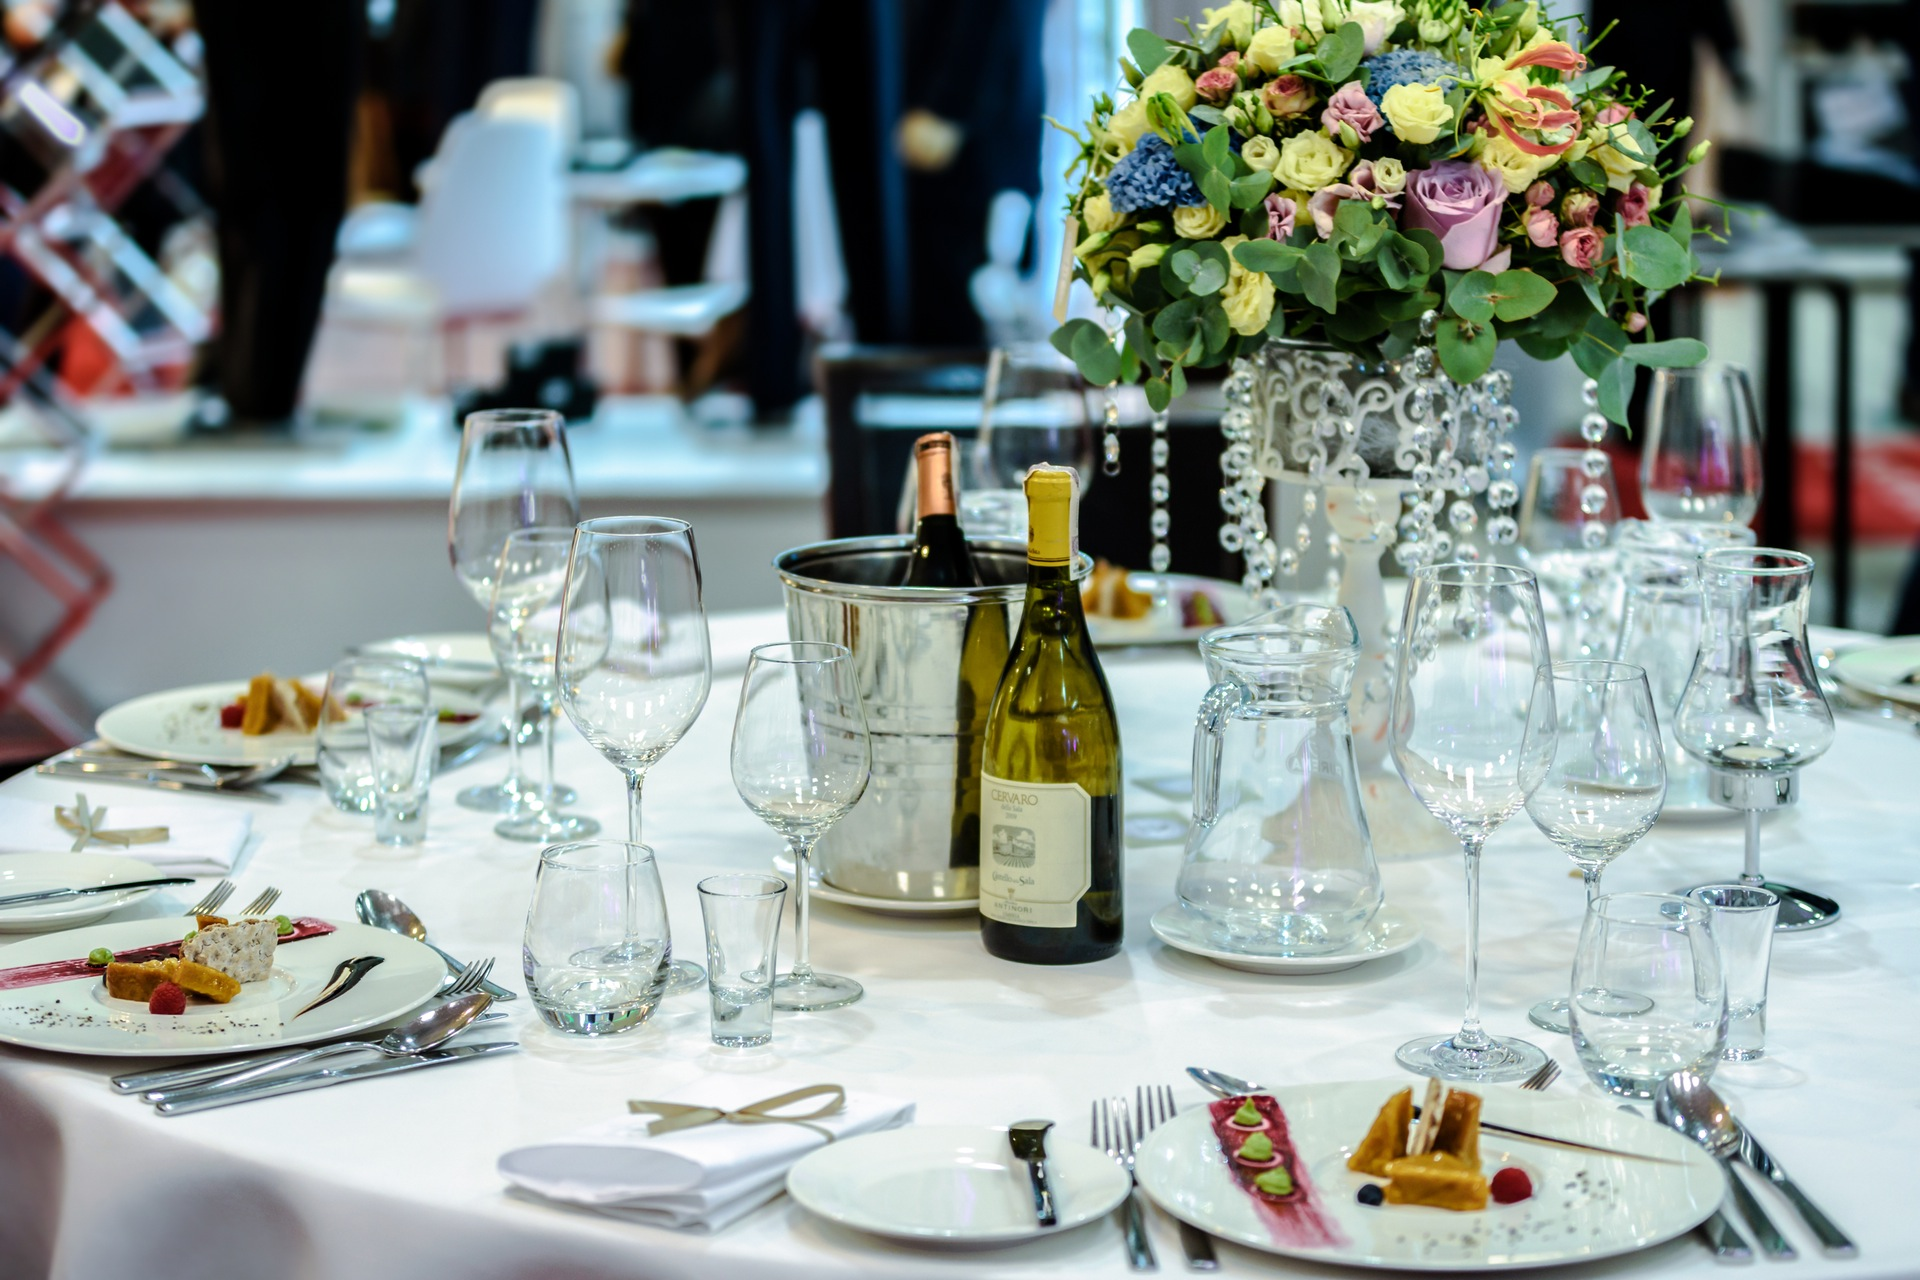 Summer Table Etiquette and Proper Settings